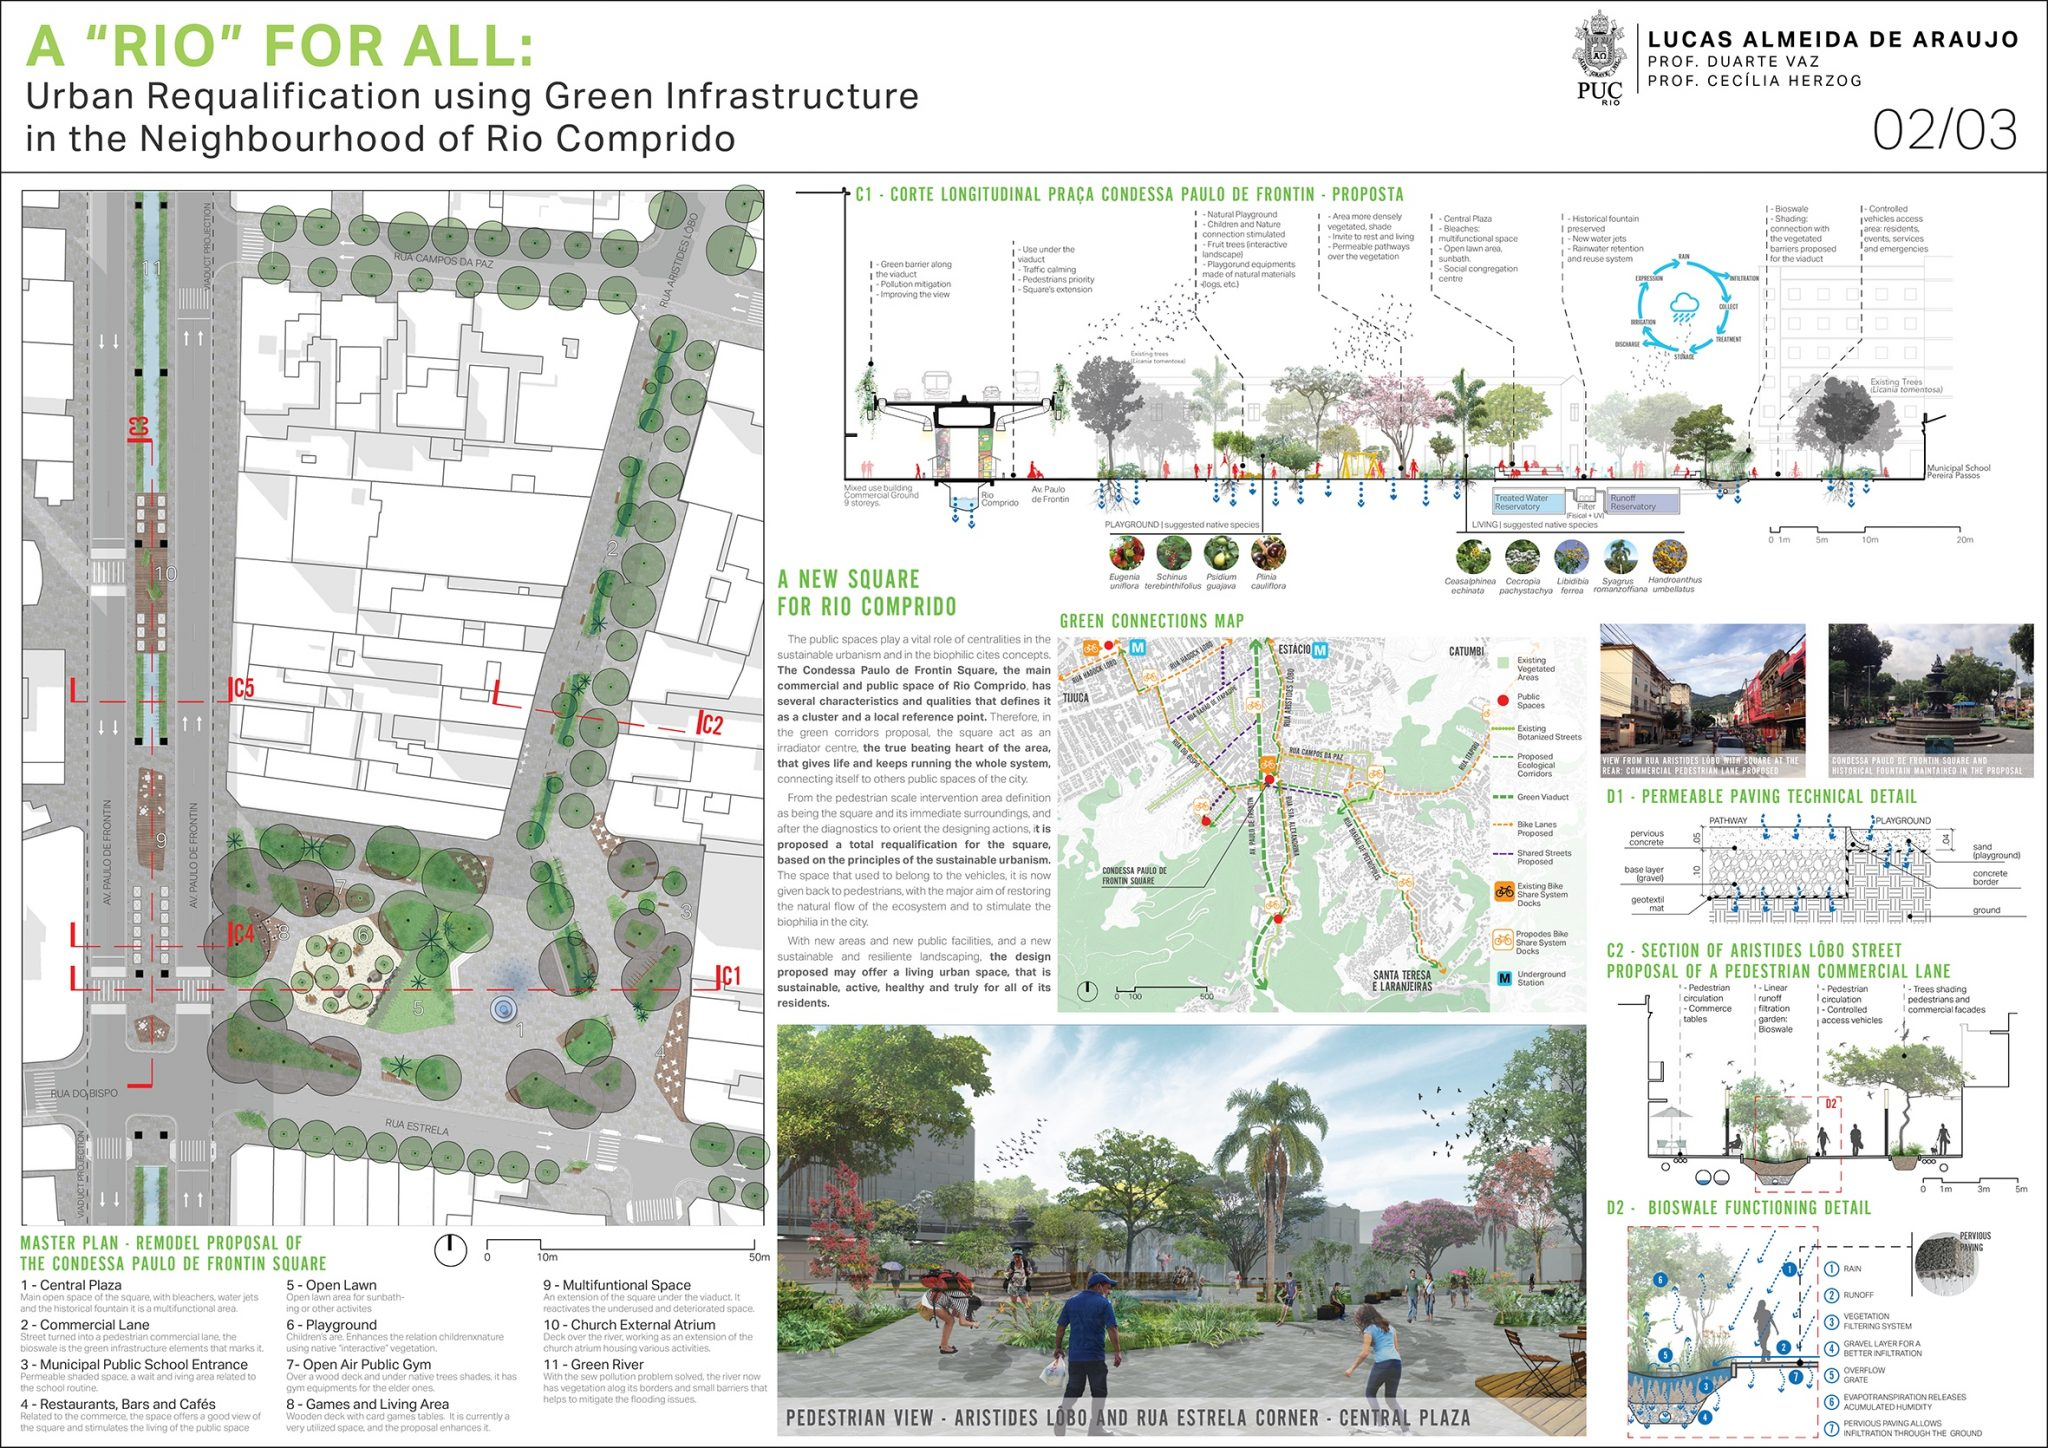 Arte Publico Press Desk Copies The Nature Of Cities An Idea Hive Of Green City Building Page 10